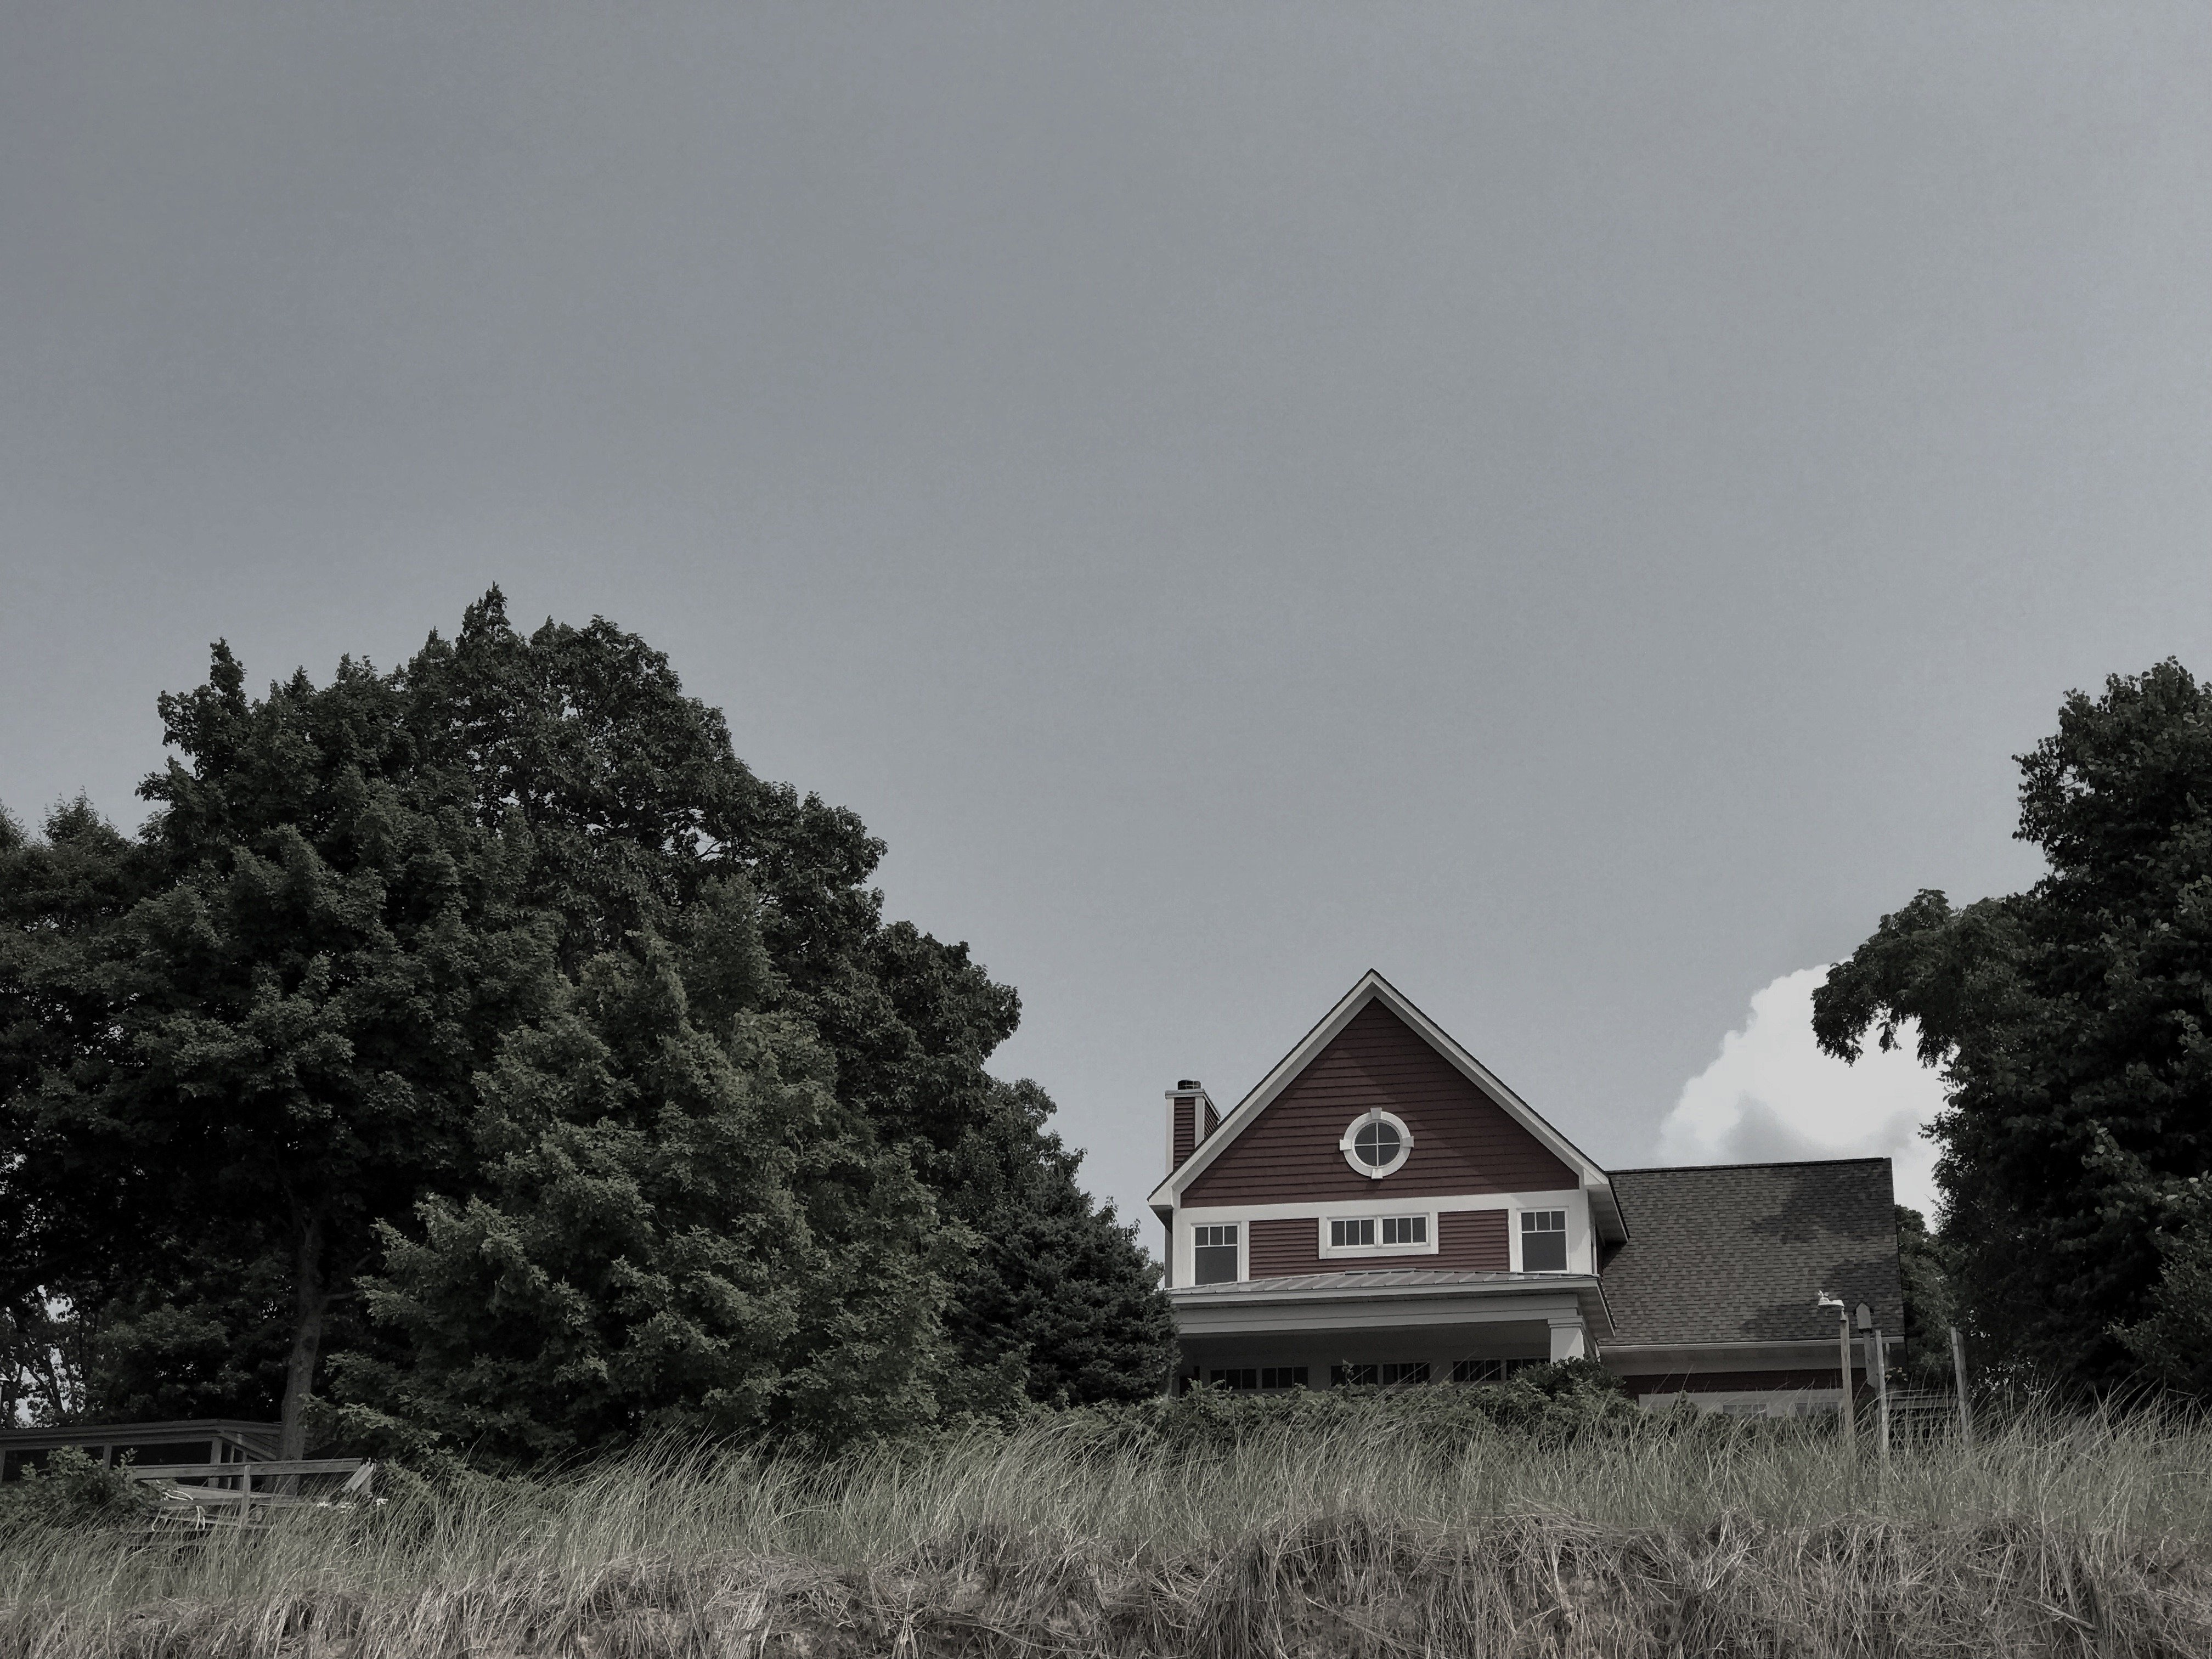 a red house in the trees